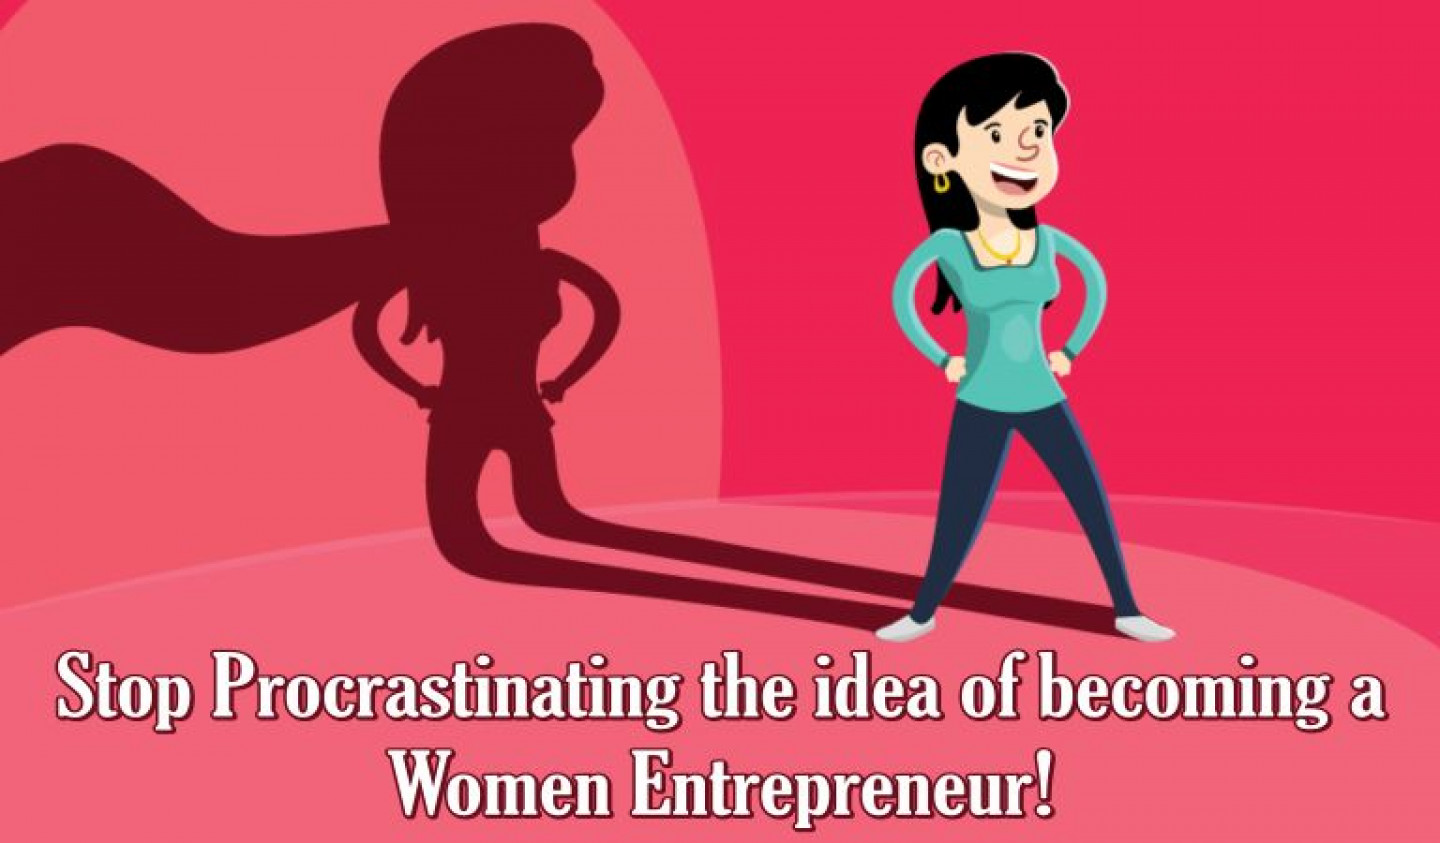 Stop Procrastinating the idea of becoming a Women Entrepreneur!